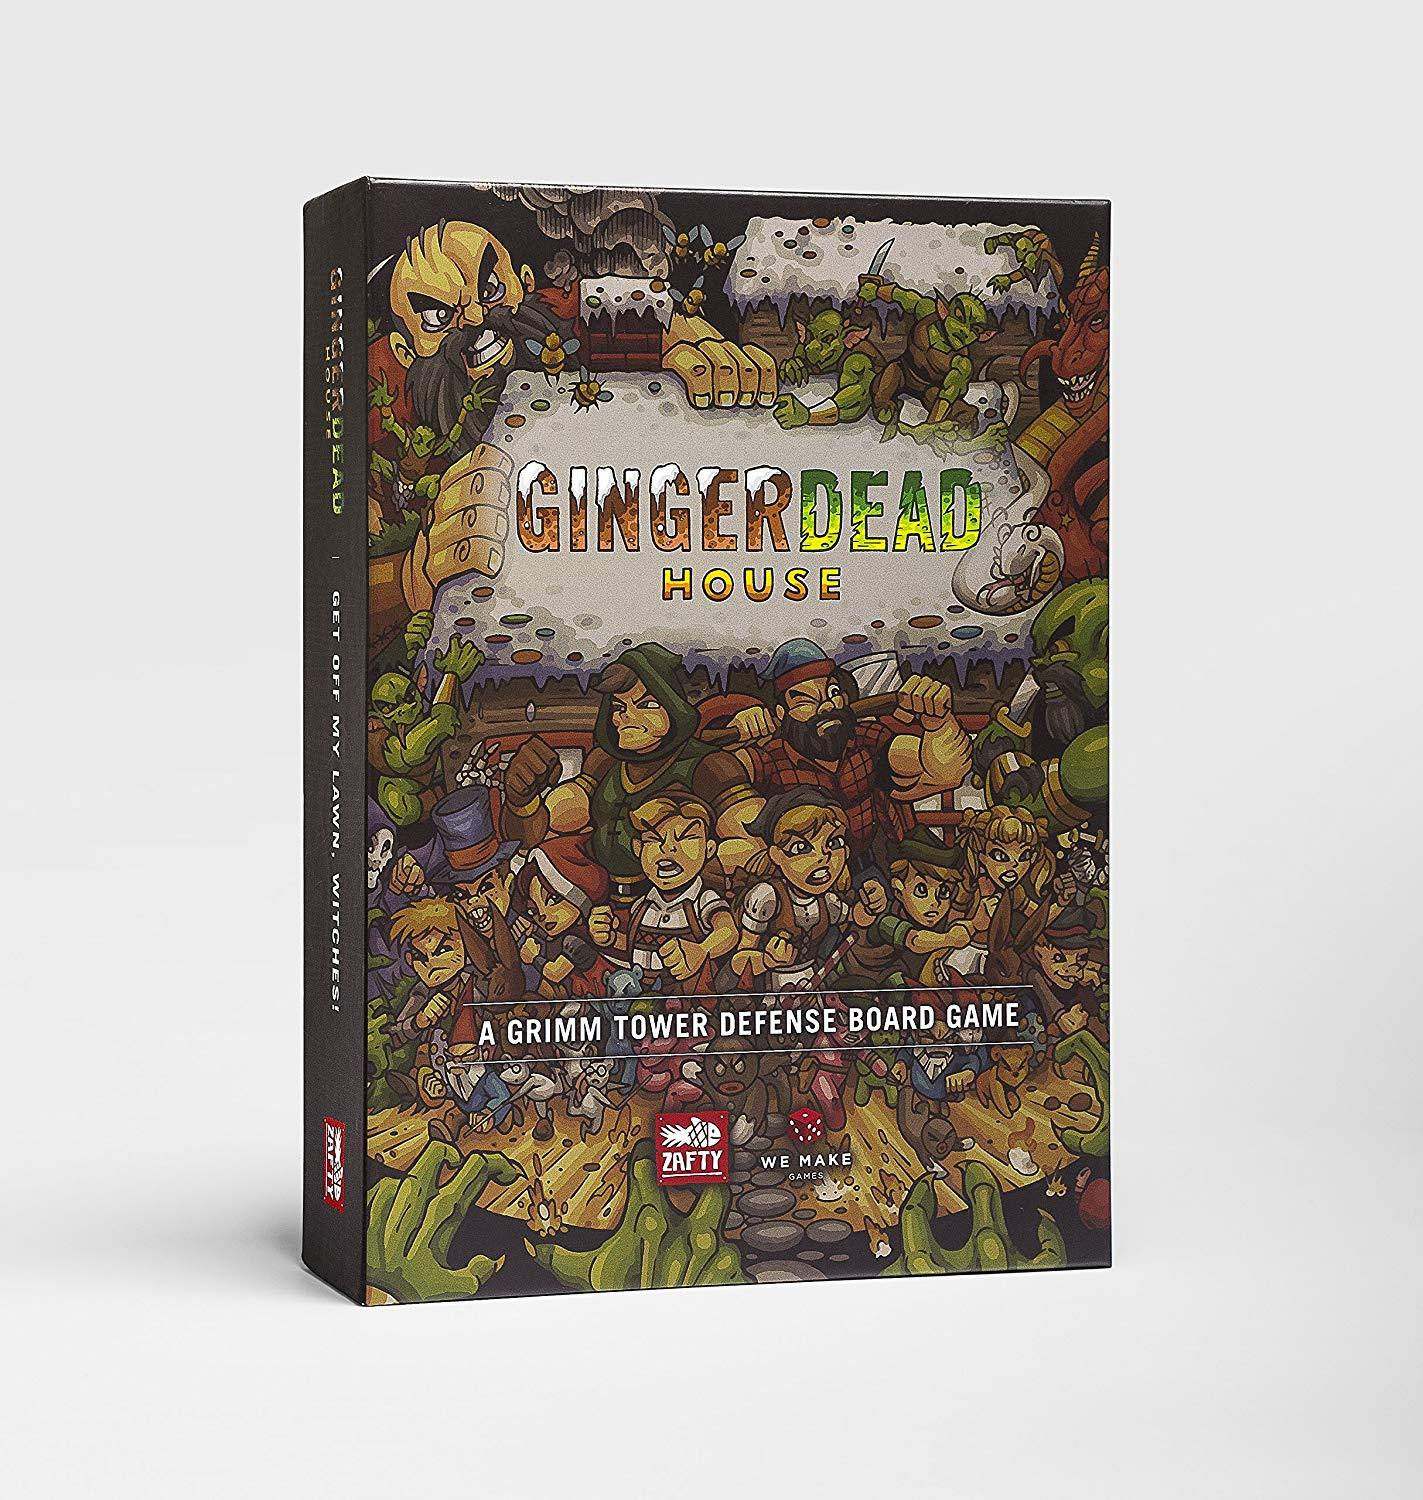 Kickstater gingerdead house   a grimm tower defense board game